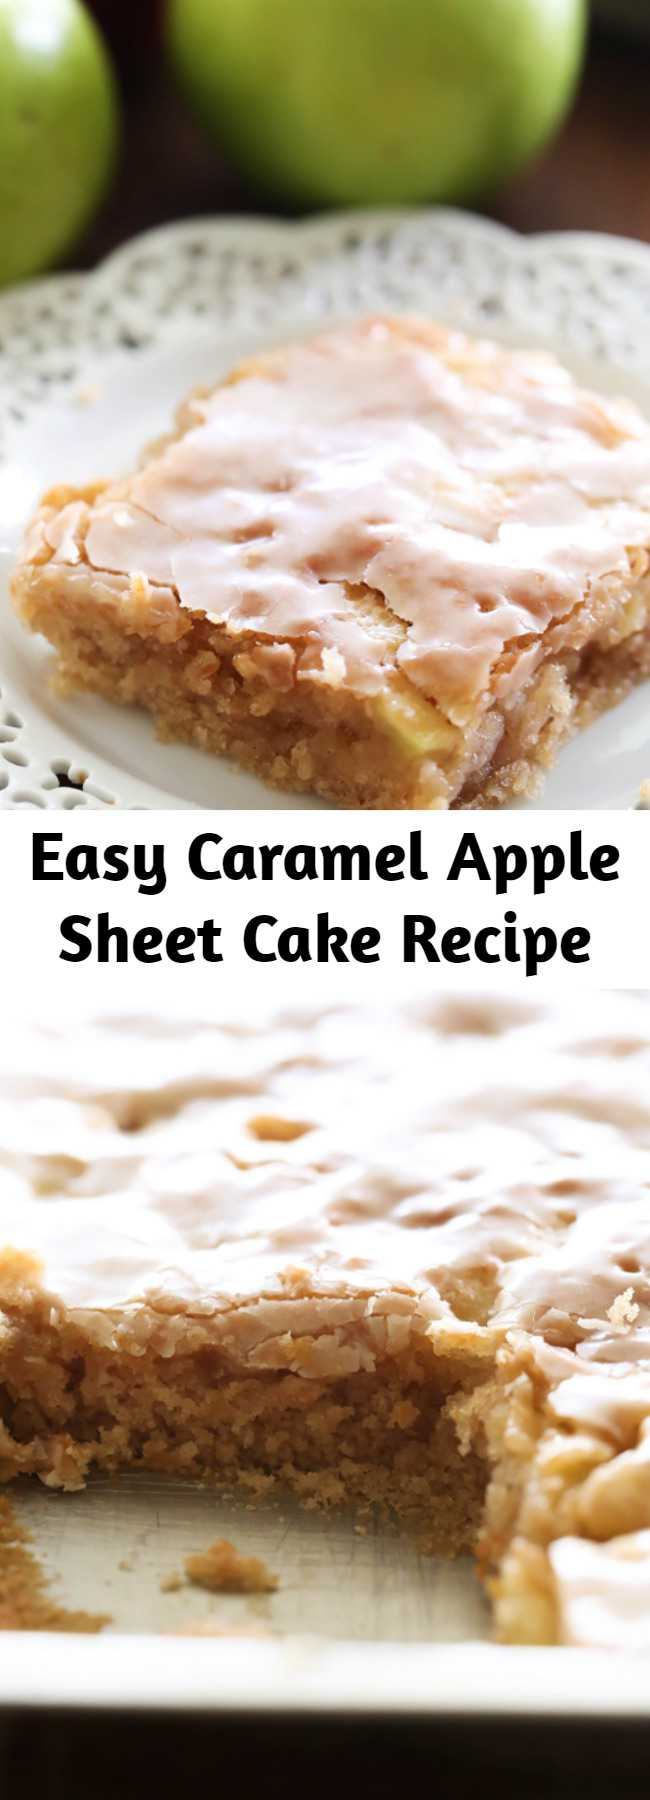 Easy Caramel Apple Sheet Cake Recipe - This delicious apple cake is perfectly moist and has caramel frosting infused in each and every bite! It is heavenly!